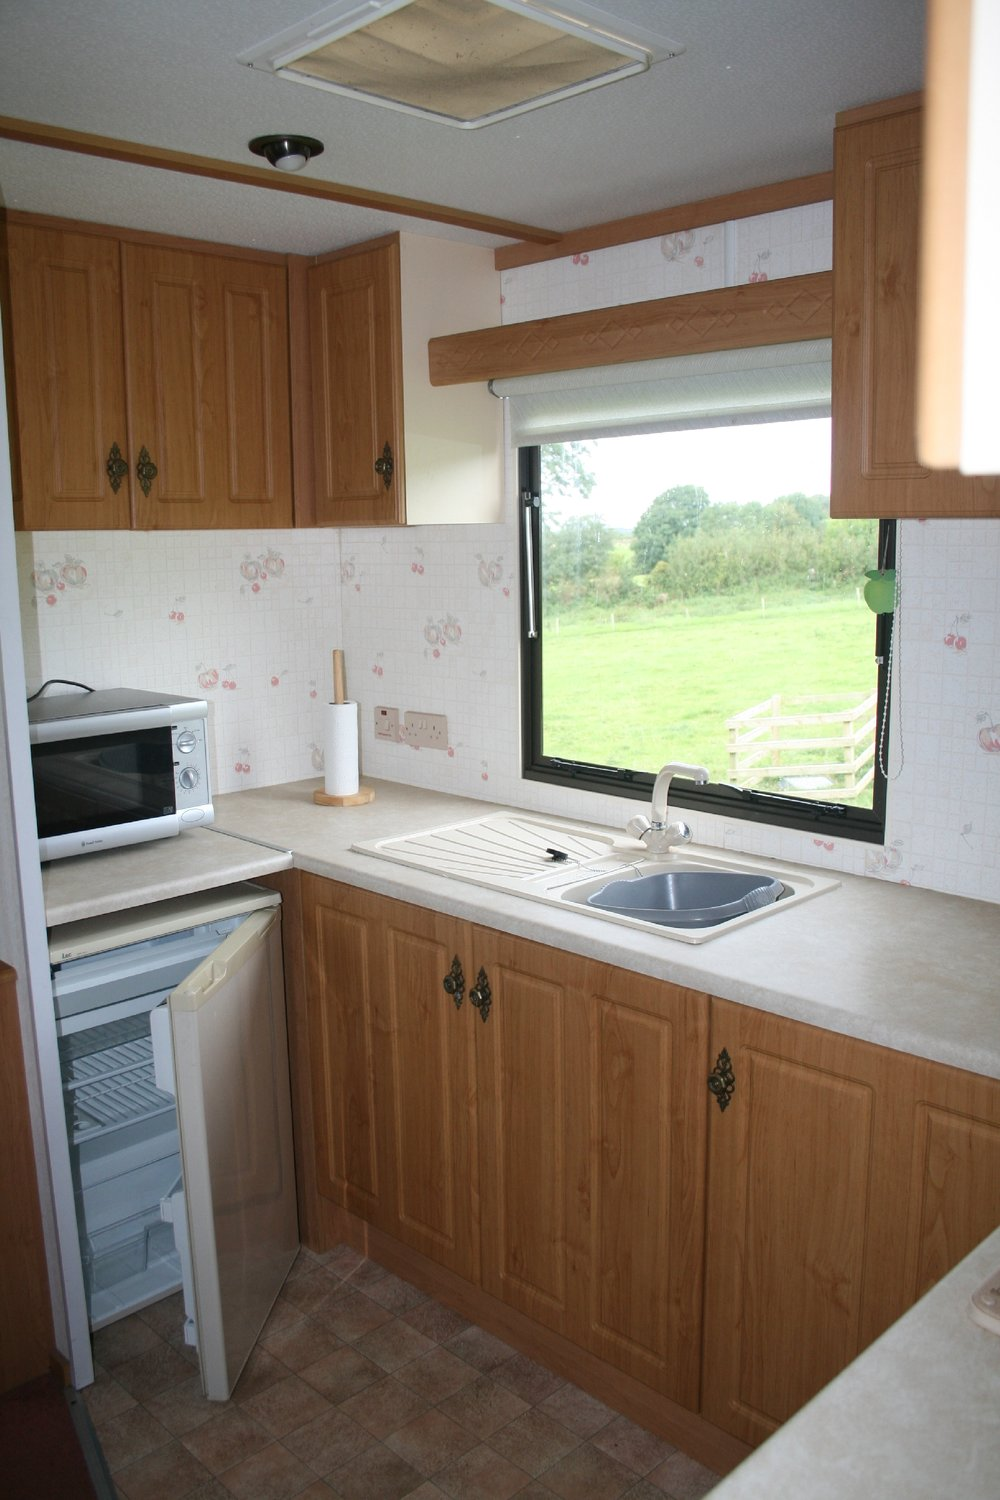 Kitchen - Caravan 2 Lorton Vale Caravans lortonvalecaravans.co.uk